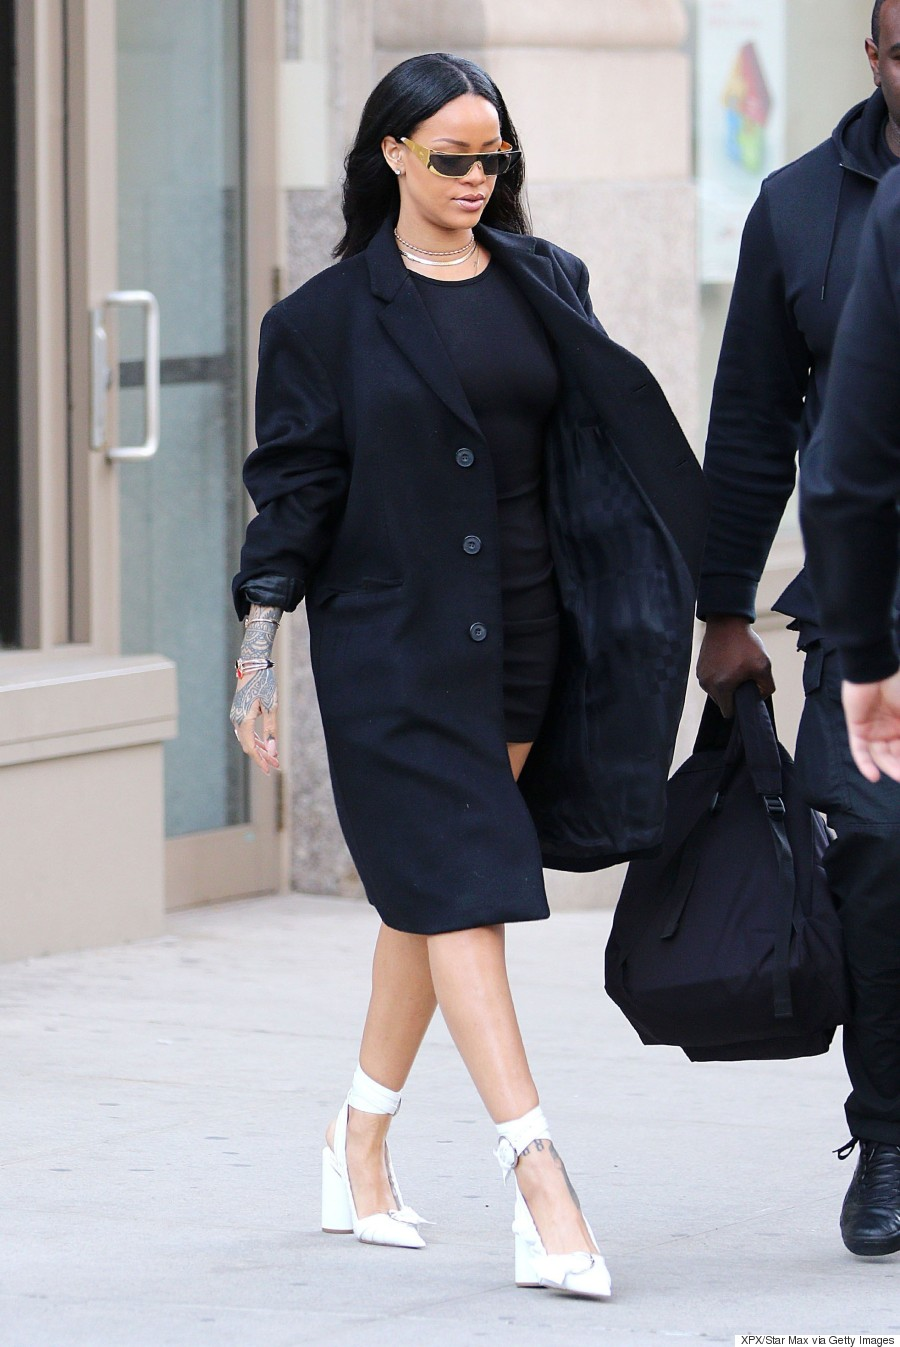 Black sandals rihanna -  List This Week Was Kendall Jenner Who Nailed All Of Our Fave Spring Trends In One Outfit Off The Shoulder Tops Distressed Denim And Lace Up Sandals